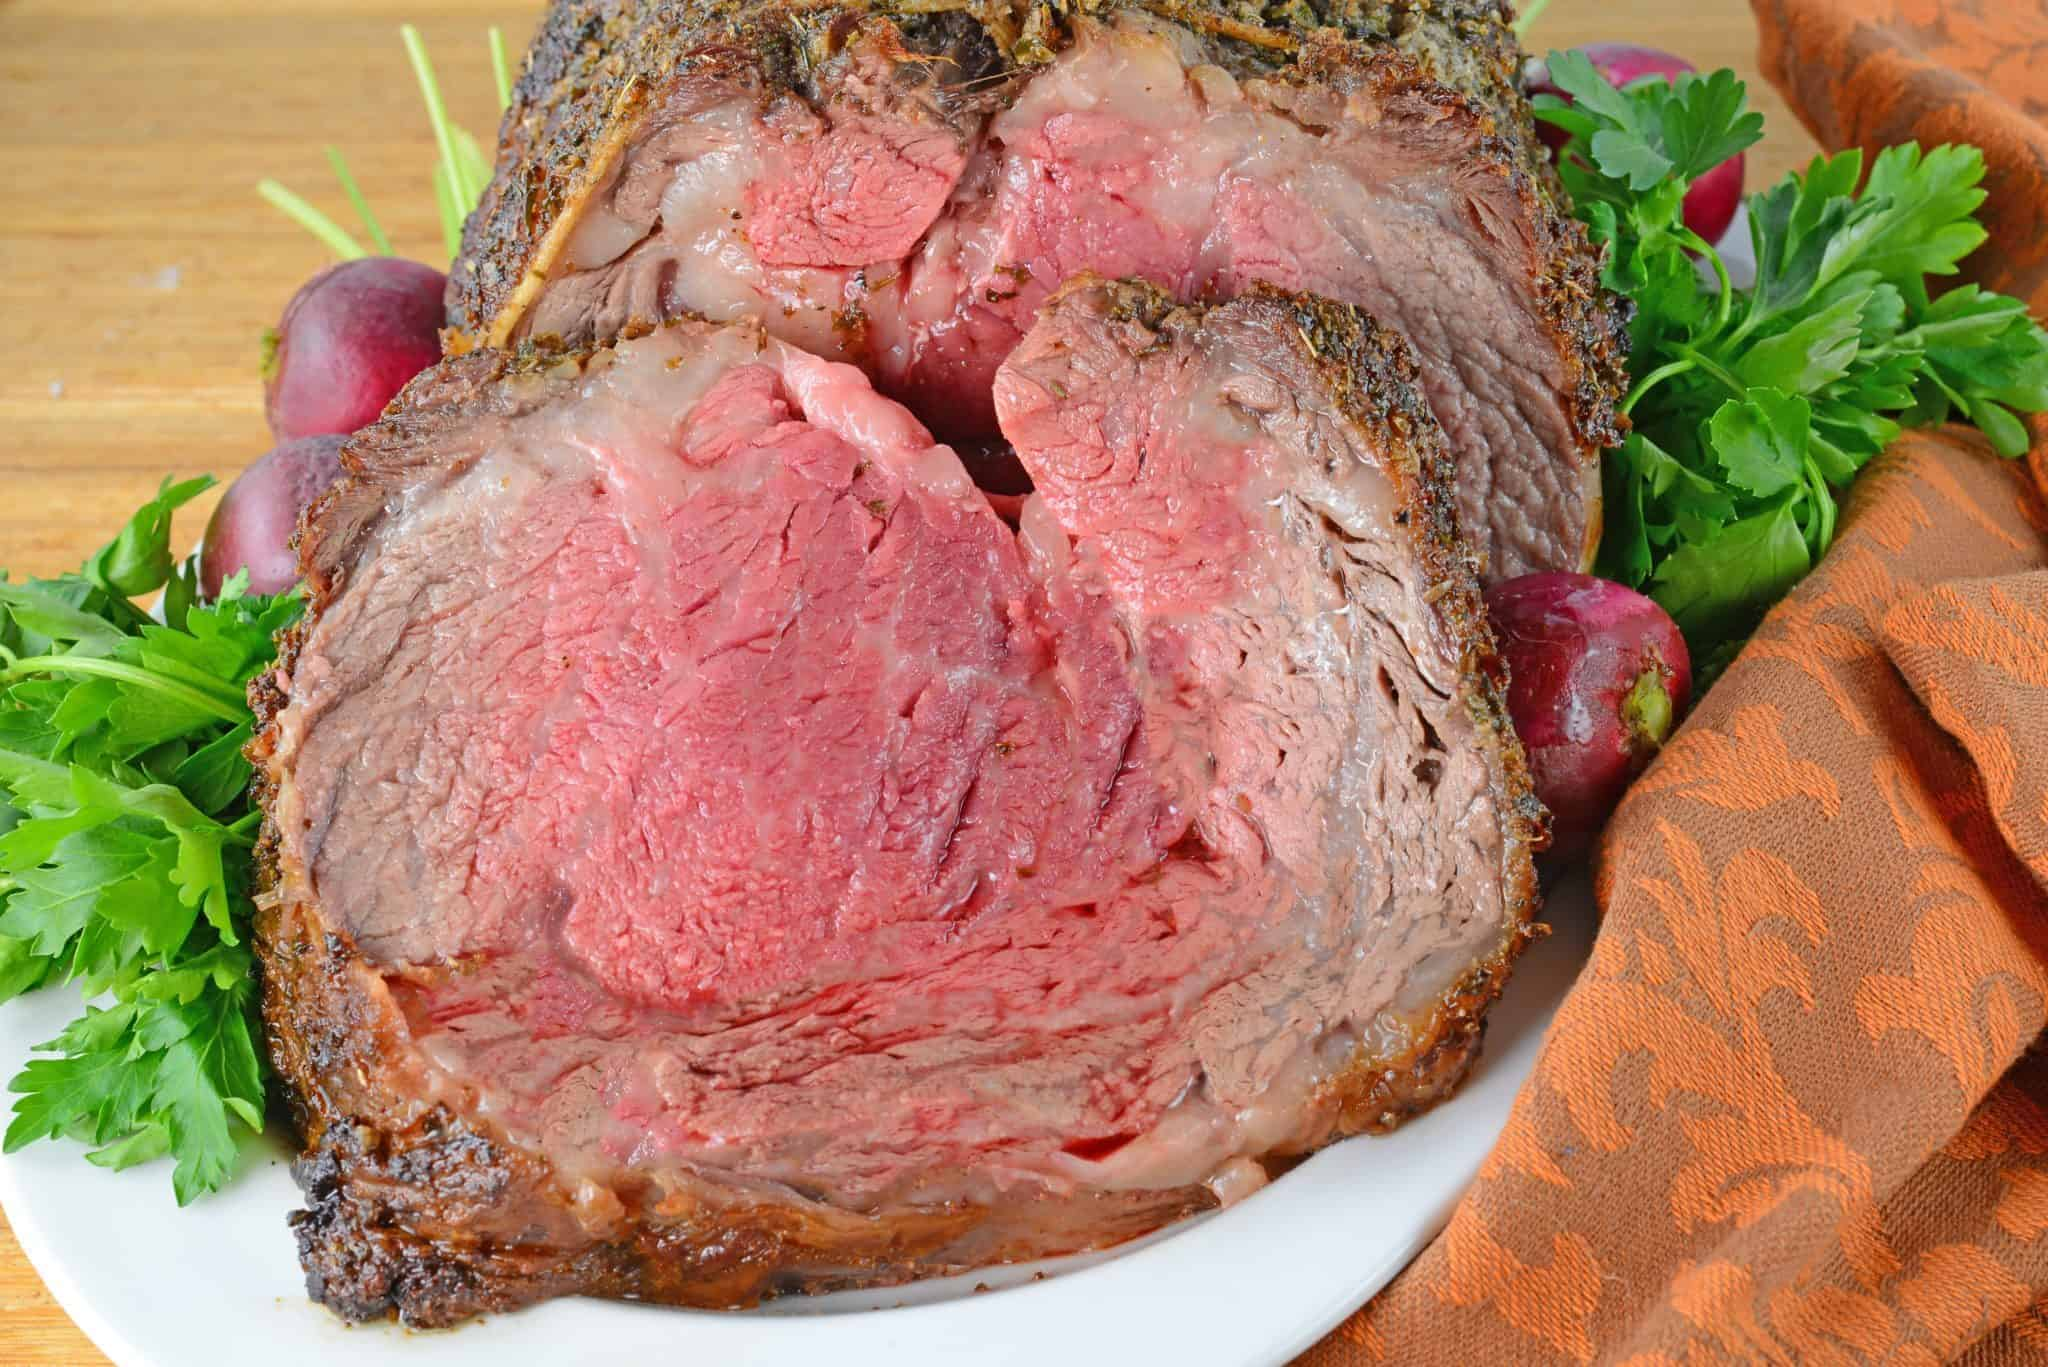 Prime Rib, or rib roast, is studded with garlic and rubbed with spice mix to create a flavorful bark. Easy step-by-step instructions for perfect prime rib!